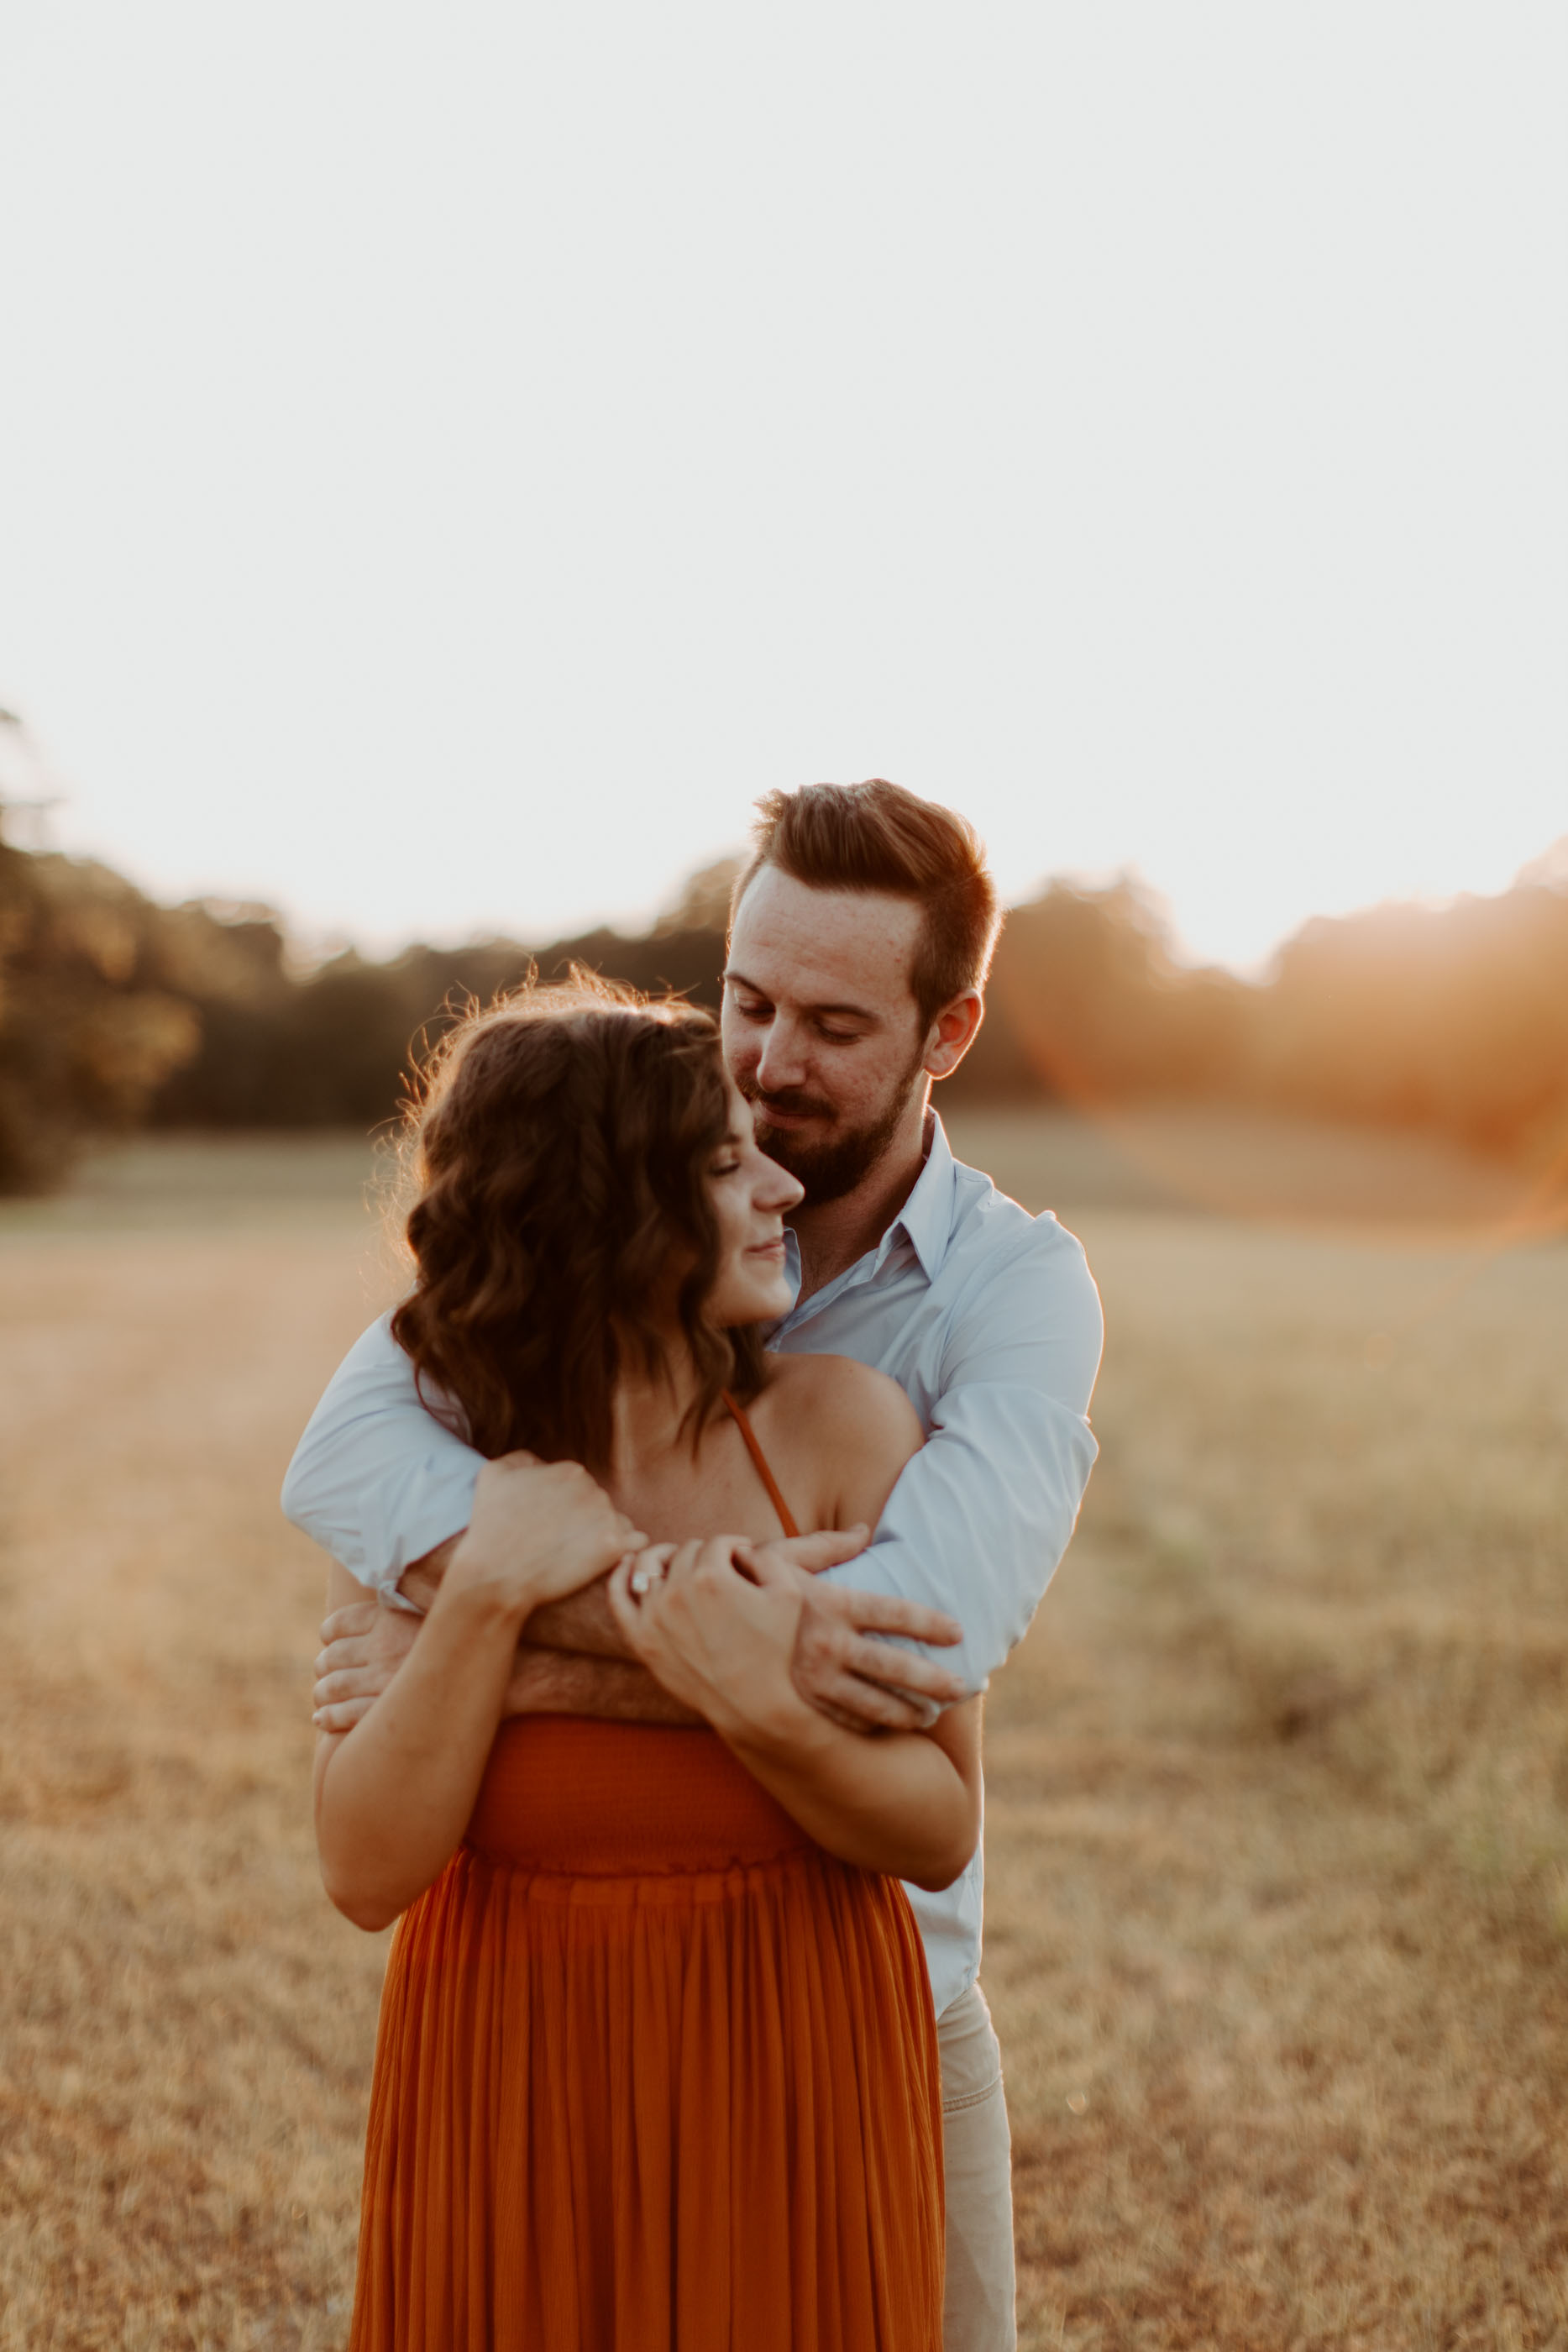 ETX engagement session golden hour lighting